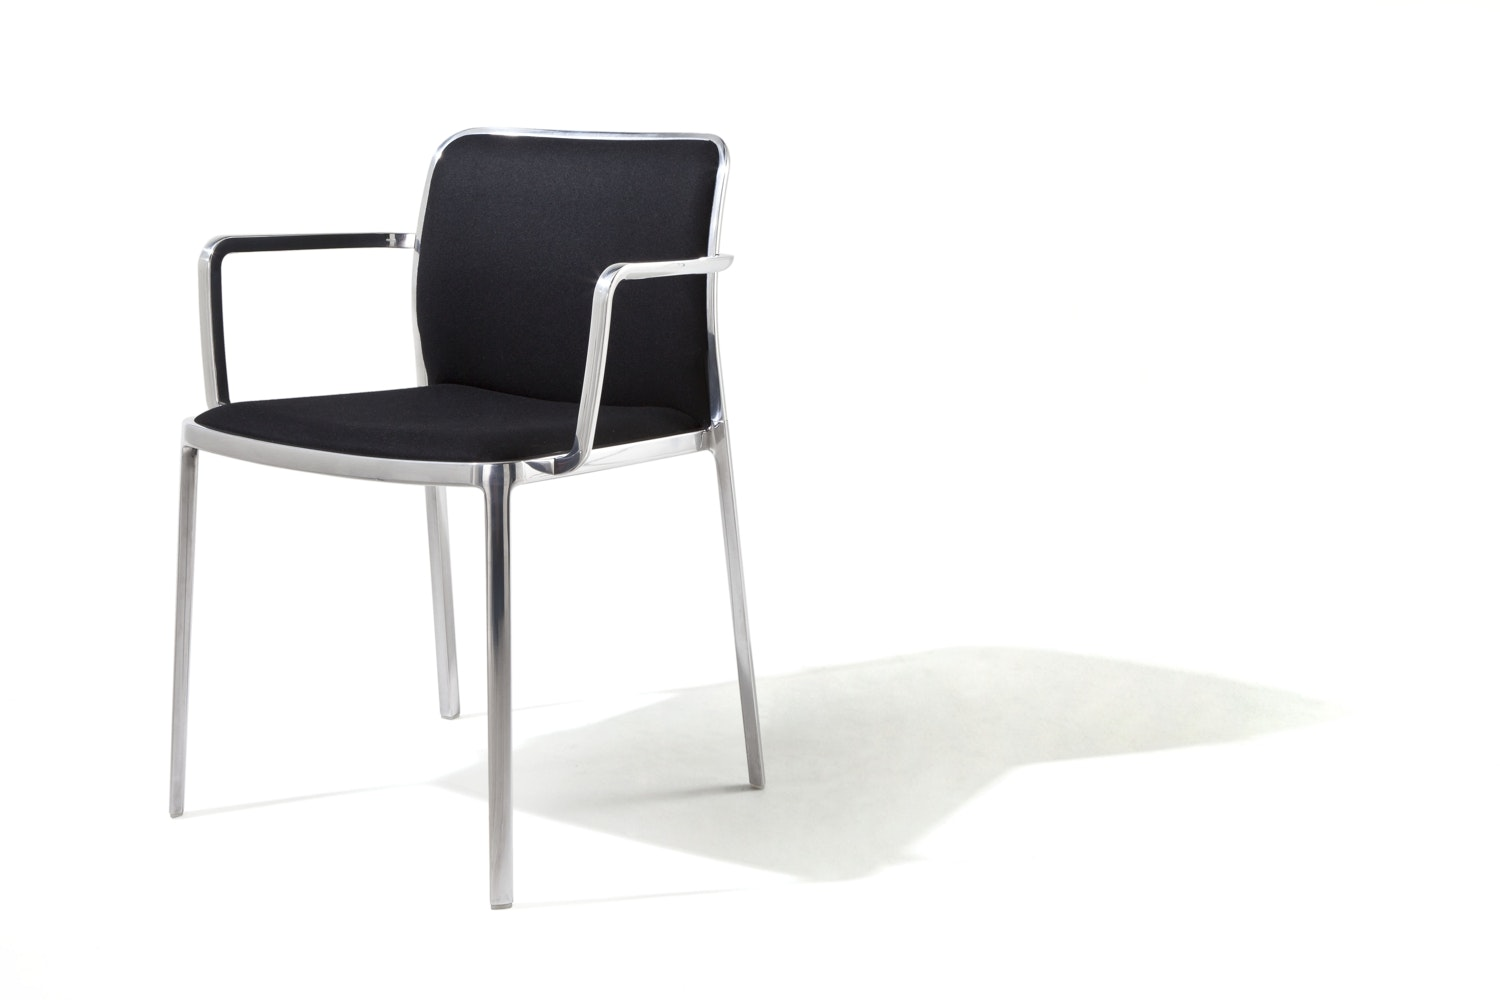 Audrey Soft Shiny Chair with Arms by Piero Lissoni for Kartell